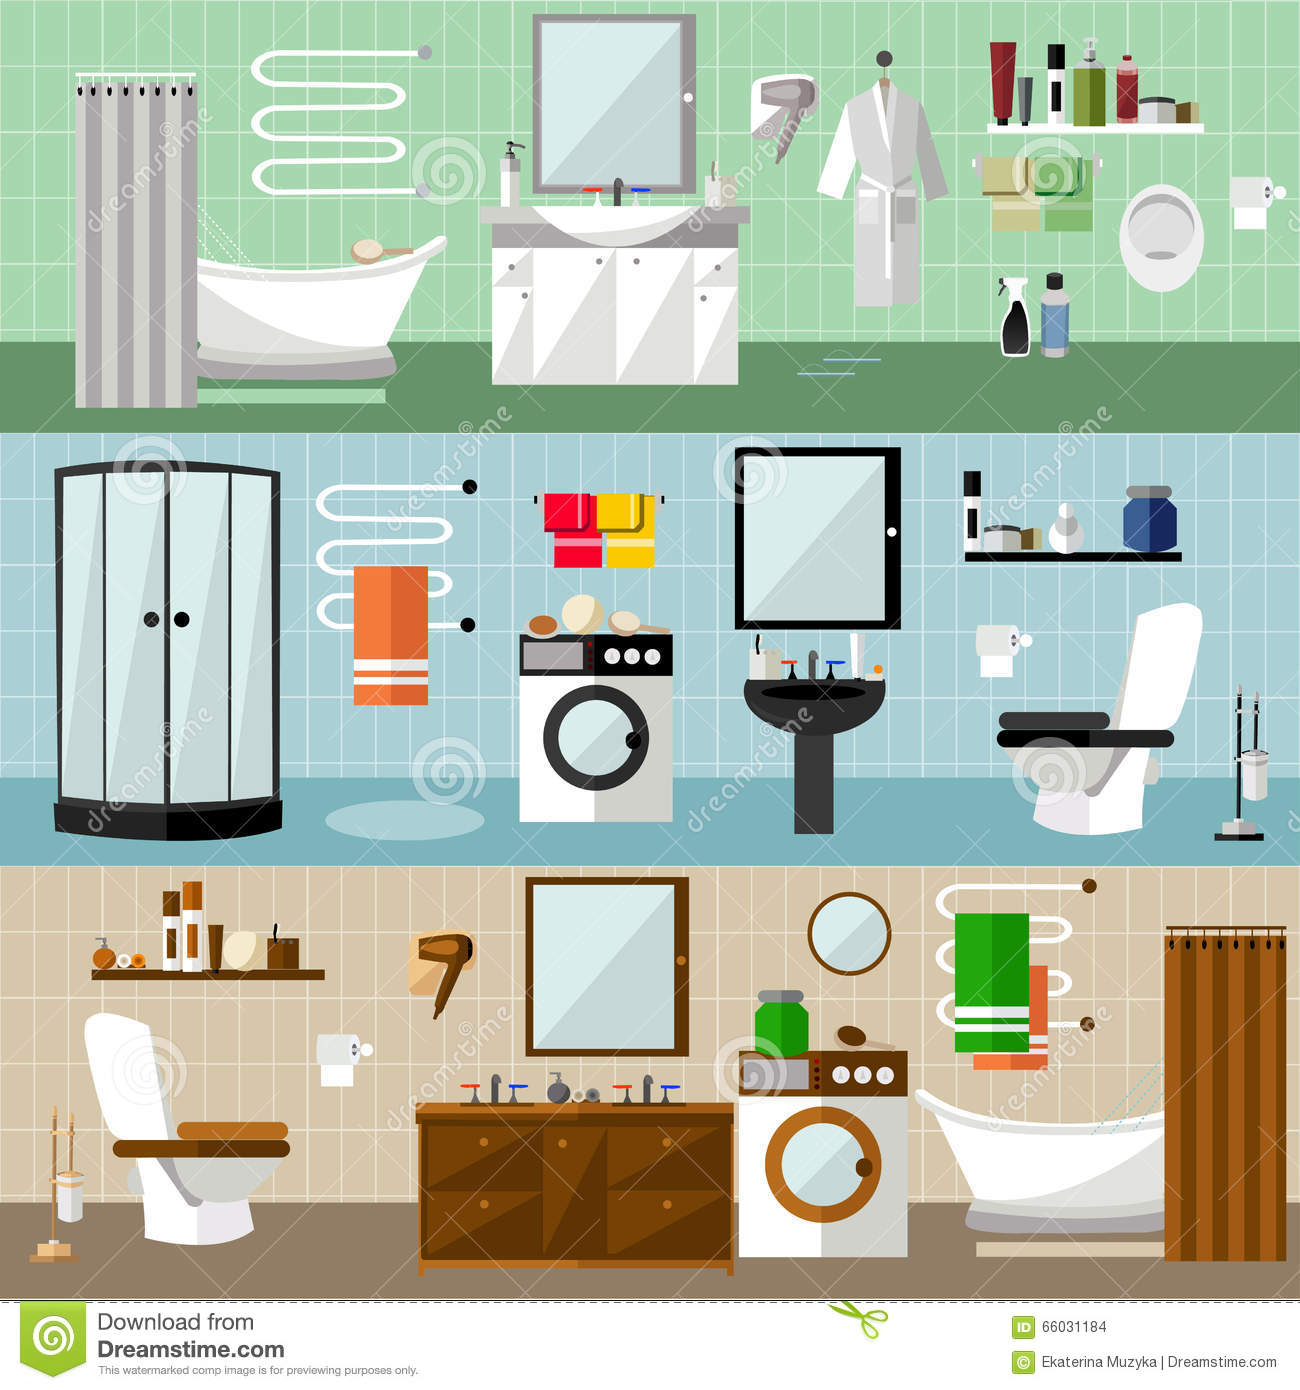 Bathroom Interior With Furniture. Vector Illustration In Flat Style. Design  Elements, Bathtub, Washing Machine, Shower